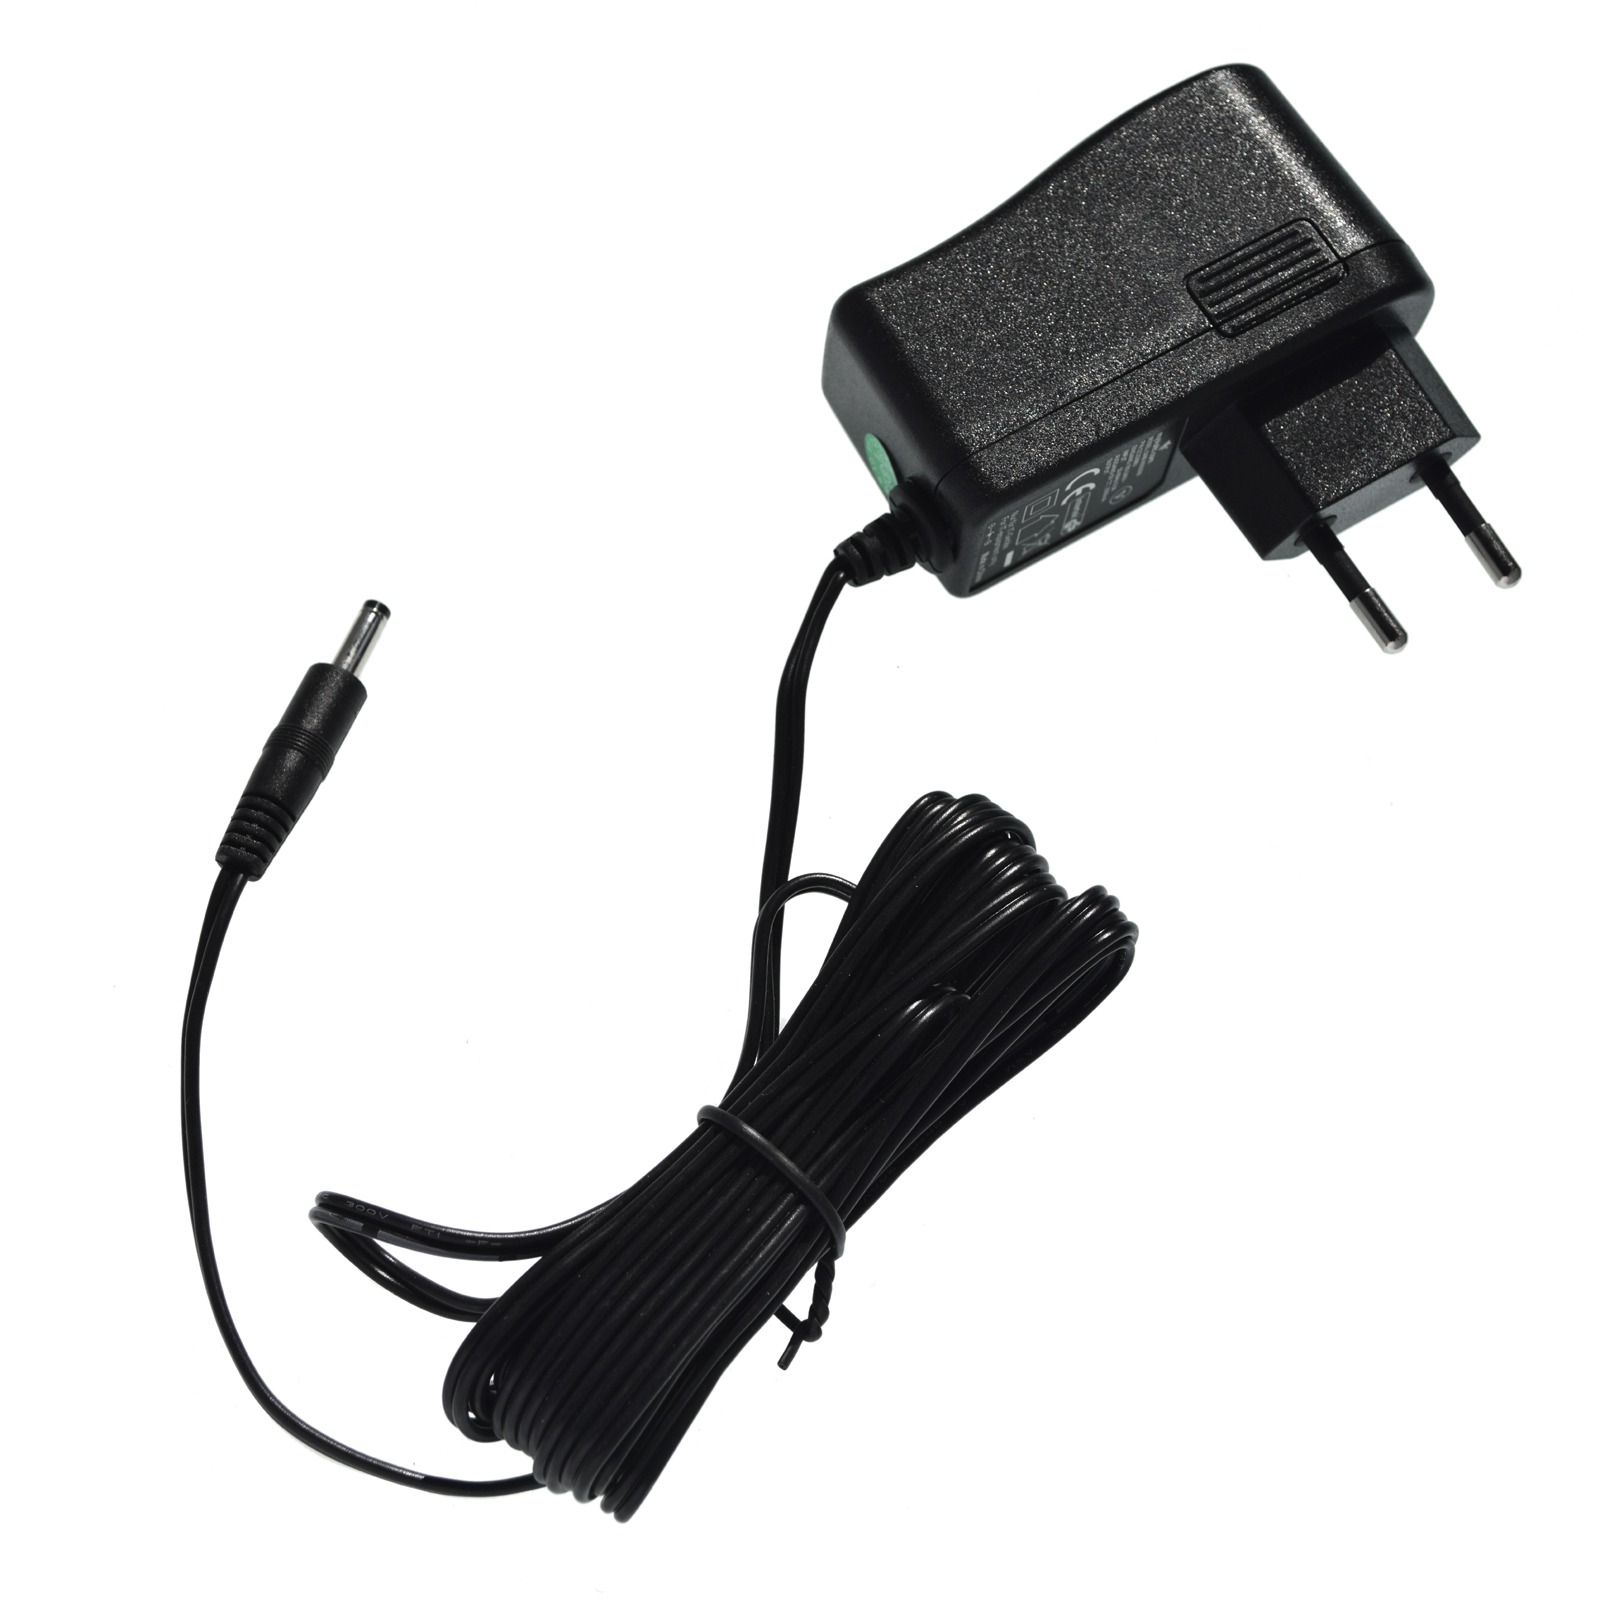 Câble USB 5V Chargeur Pour 9.7 CnM Touchpad Android